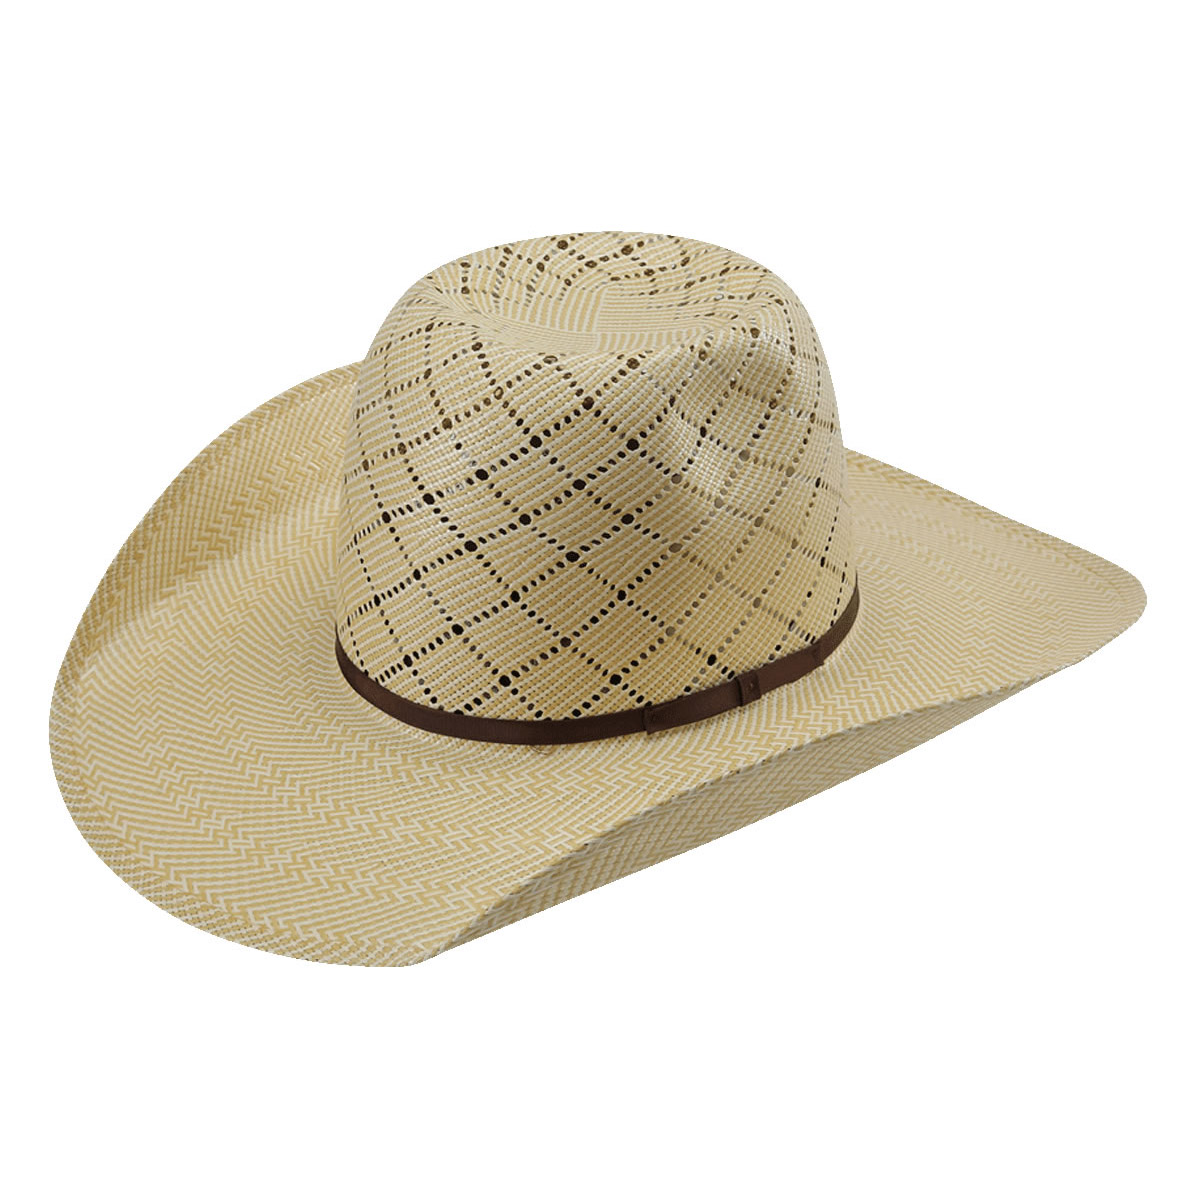 Pungo Ridge - American Hat Co 20☆ Patchwork Crossbred Straw Hat ... 4325b9a8ad0